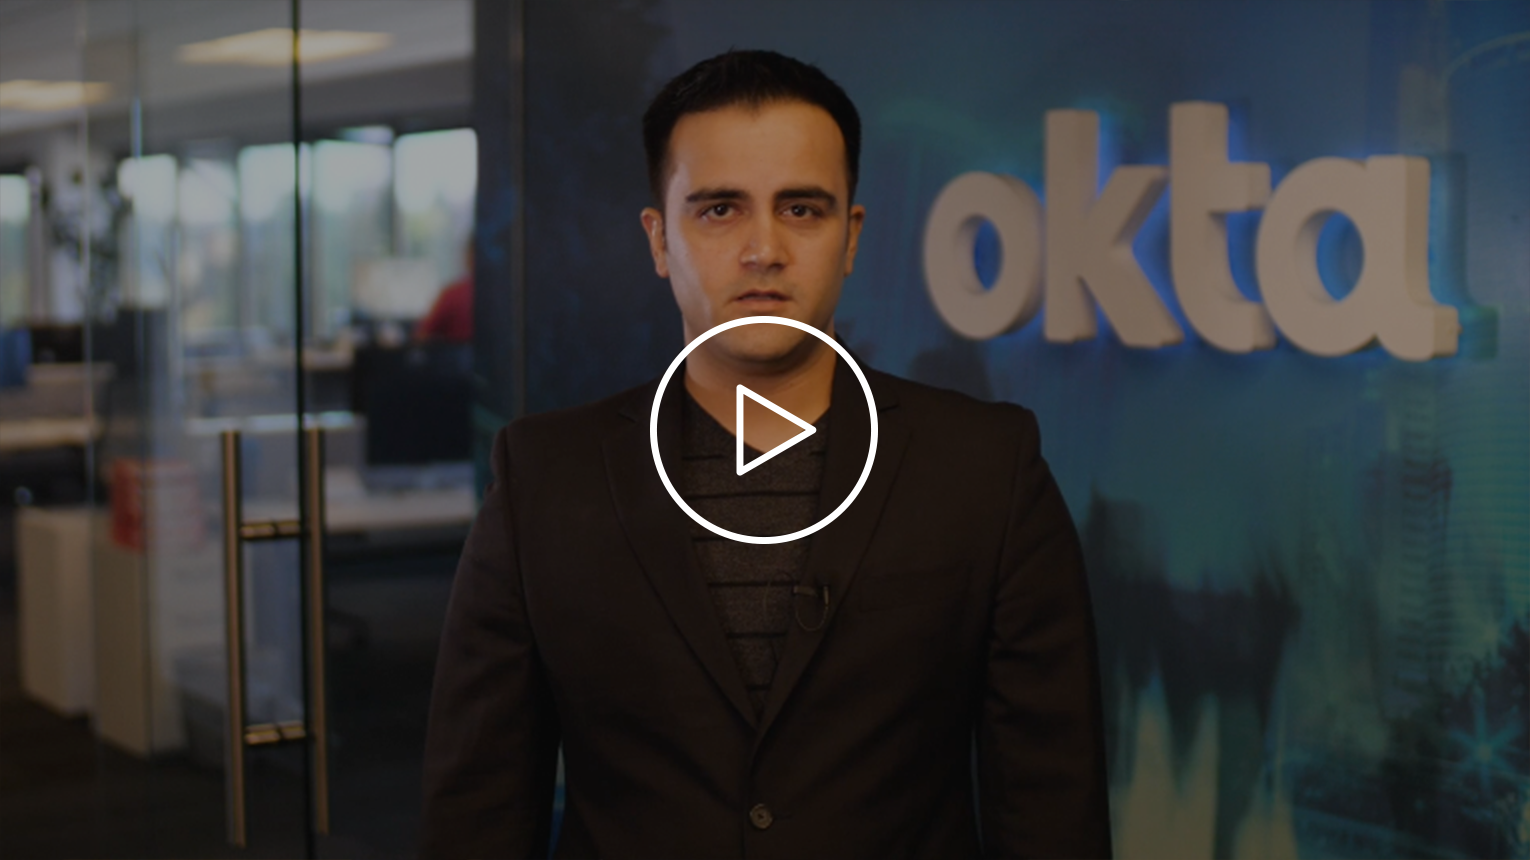 Okta Meet the Experts Video Kam Ahuja Promo